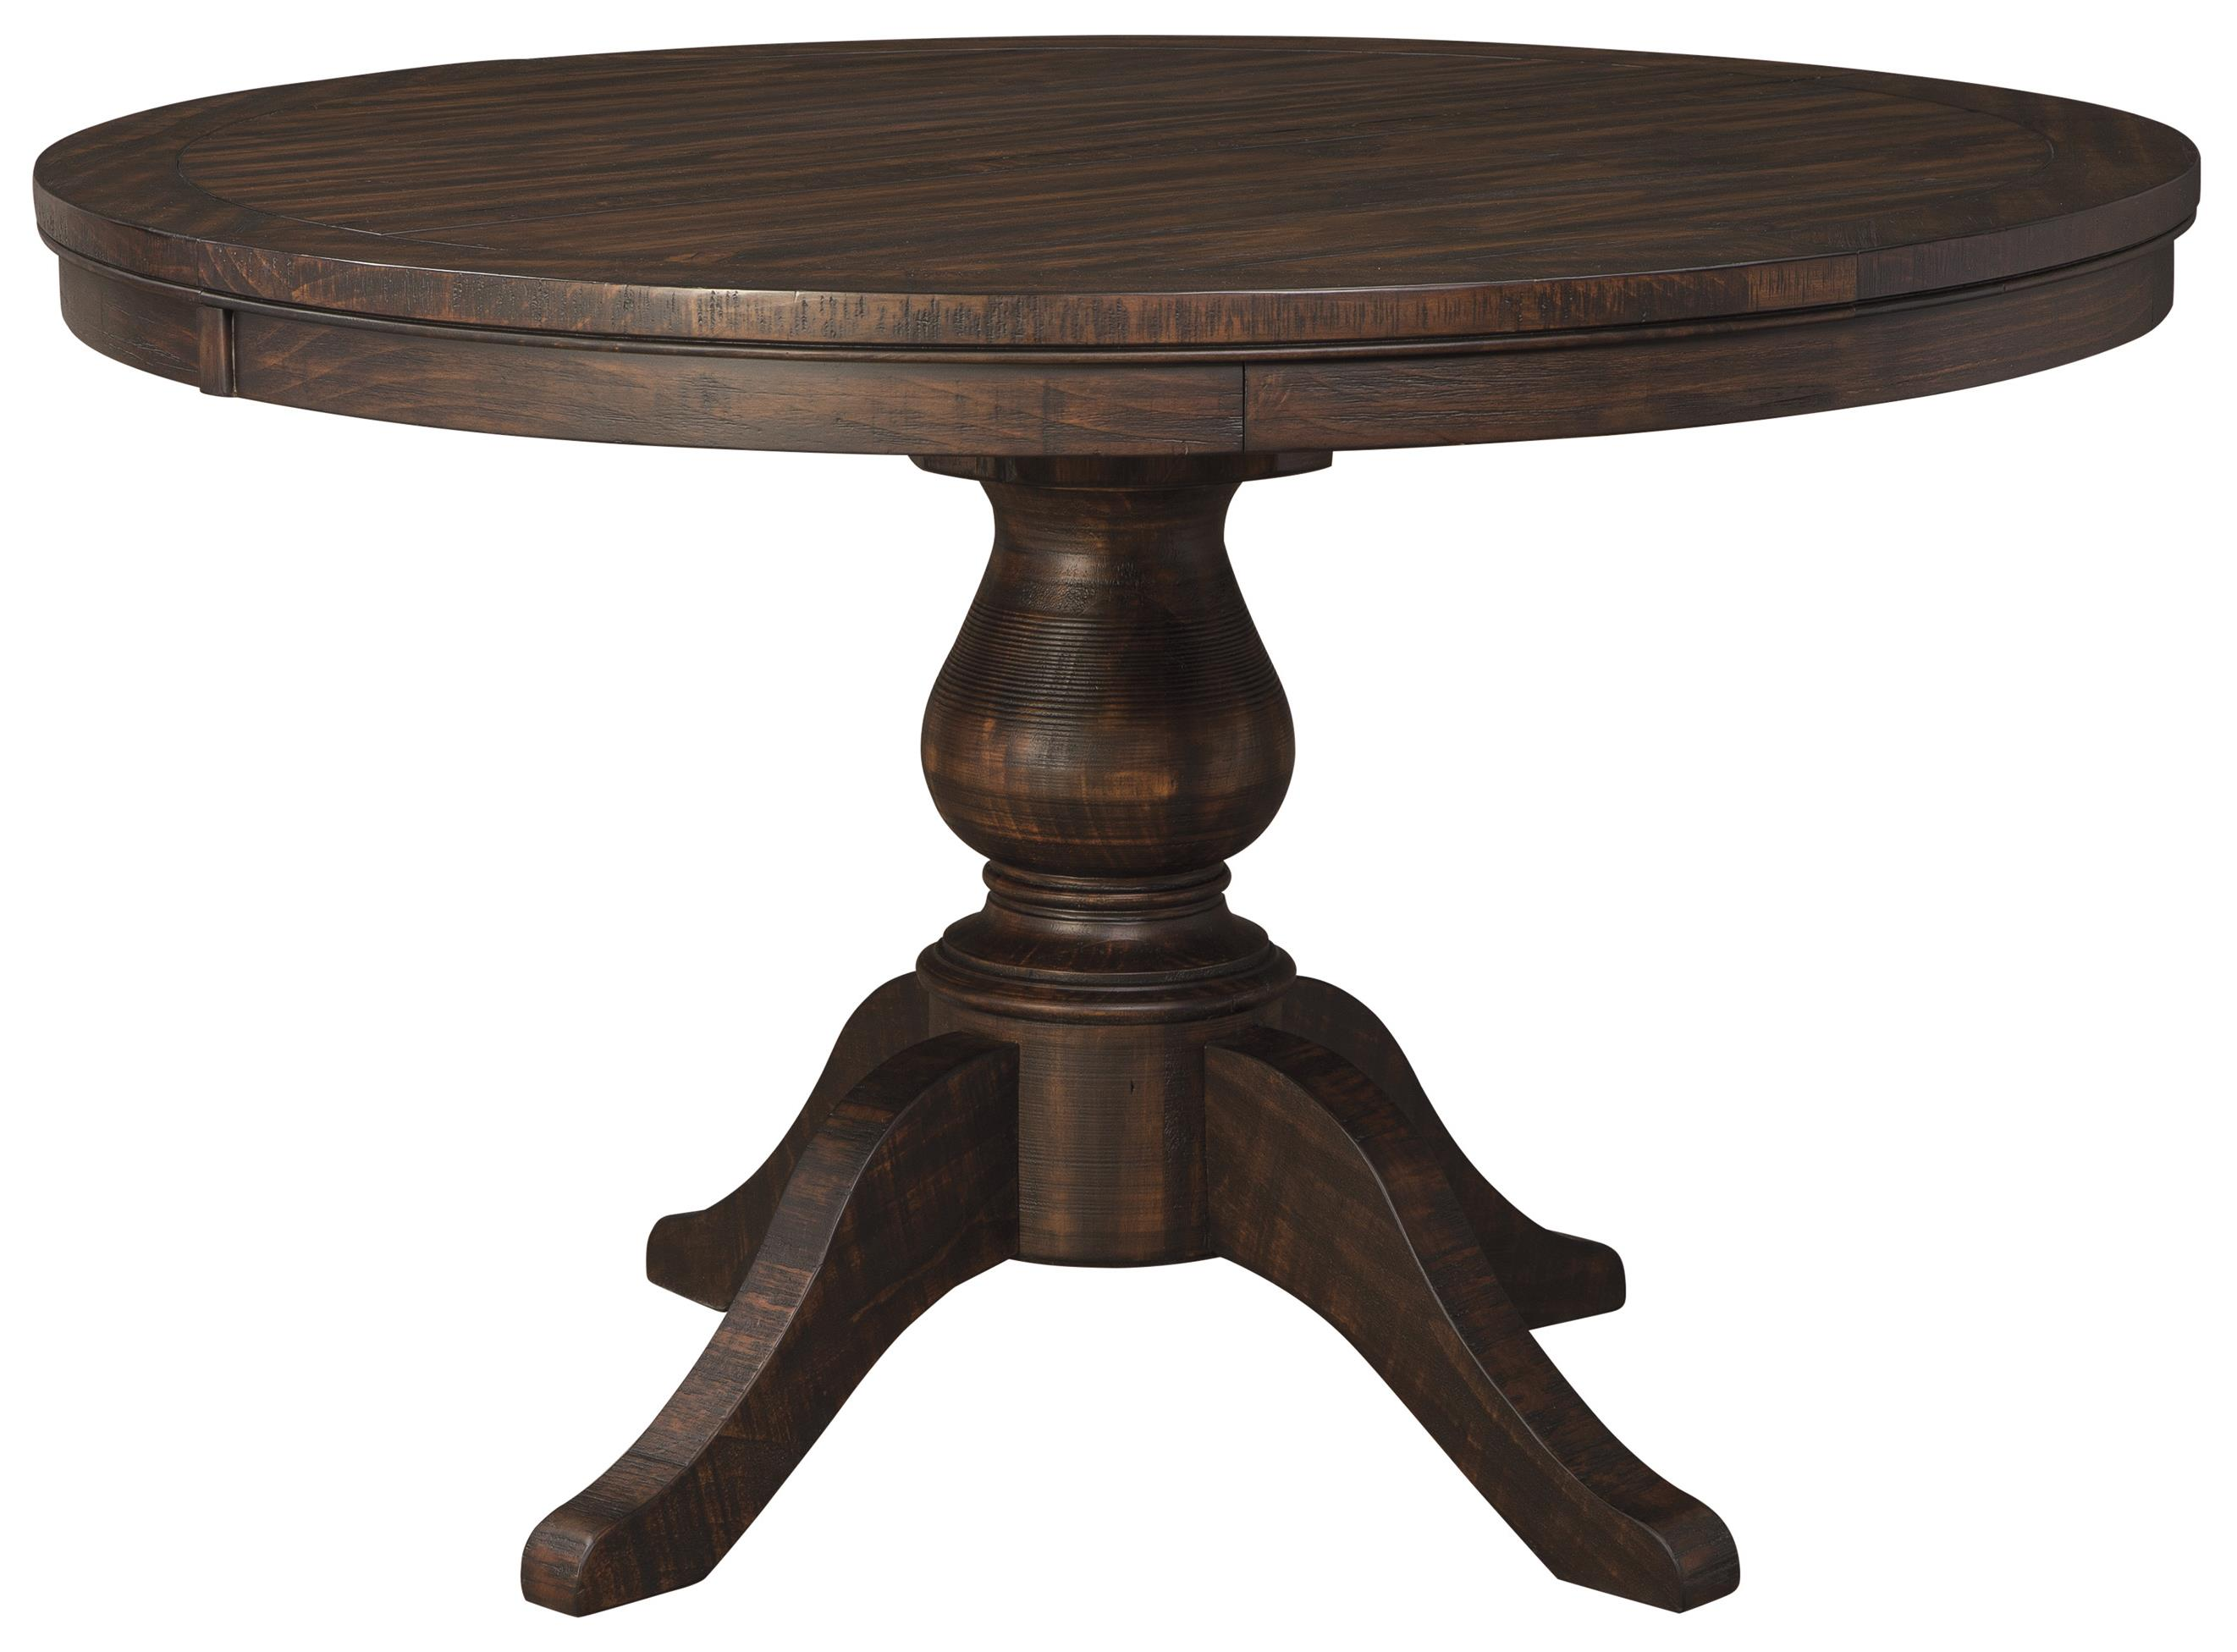 5 piece round dining table set - Round Pine Kitchen Table